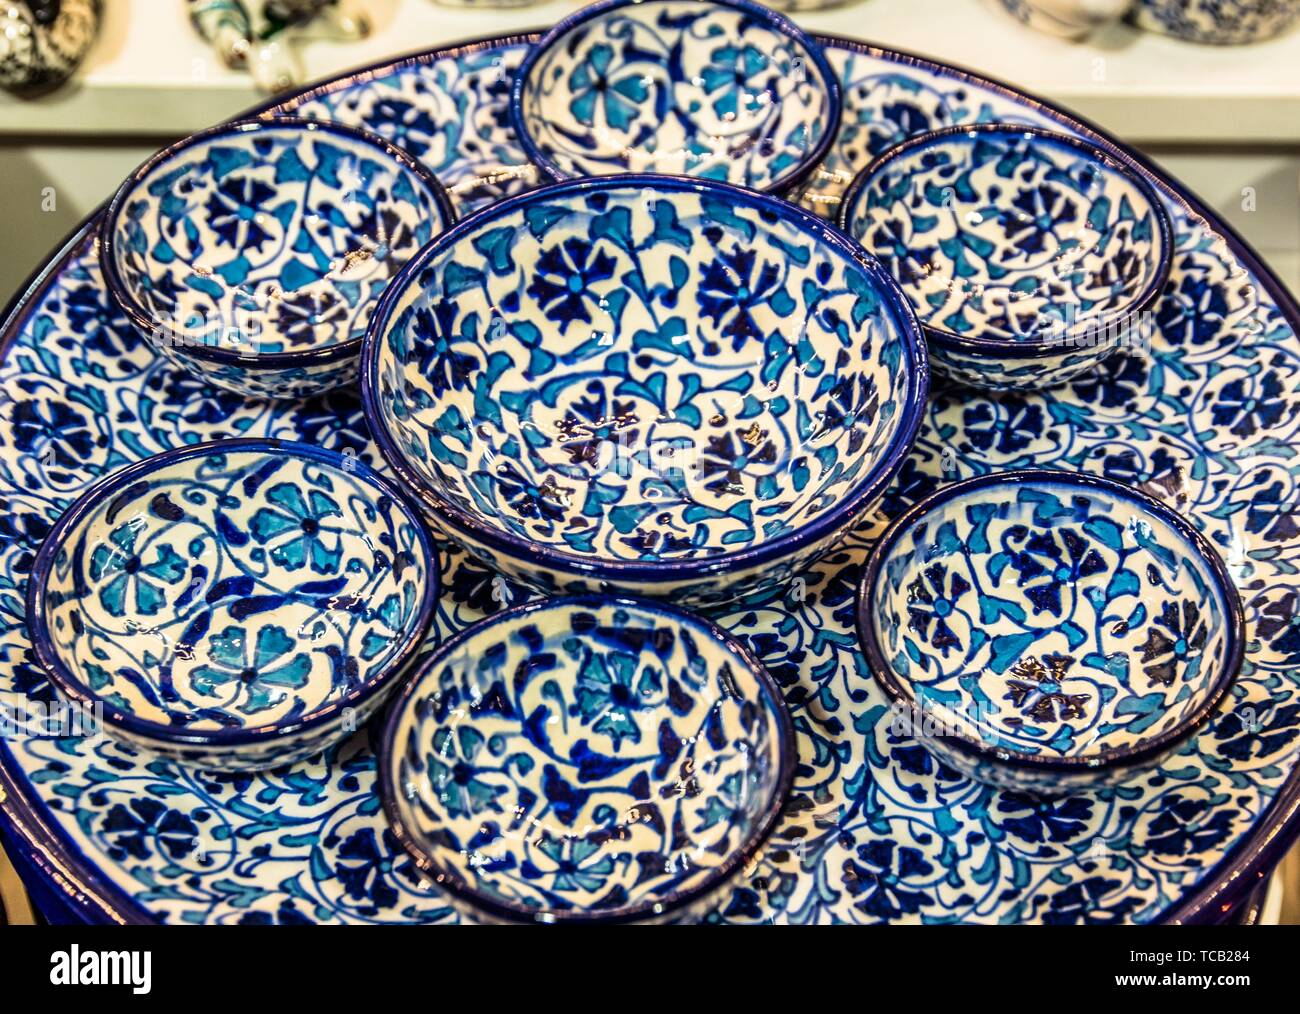 Souvenir Plates On Sale In High Resolution Stock Photography And Images Alamy